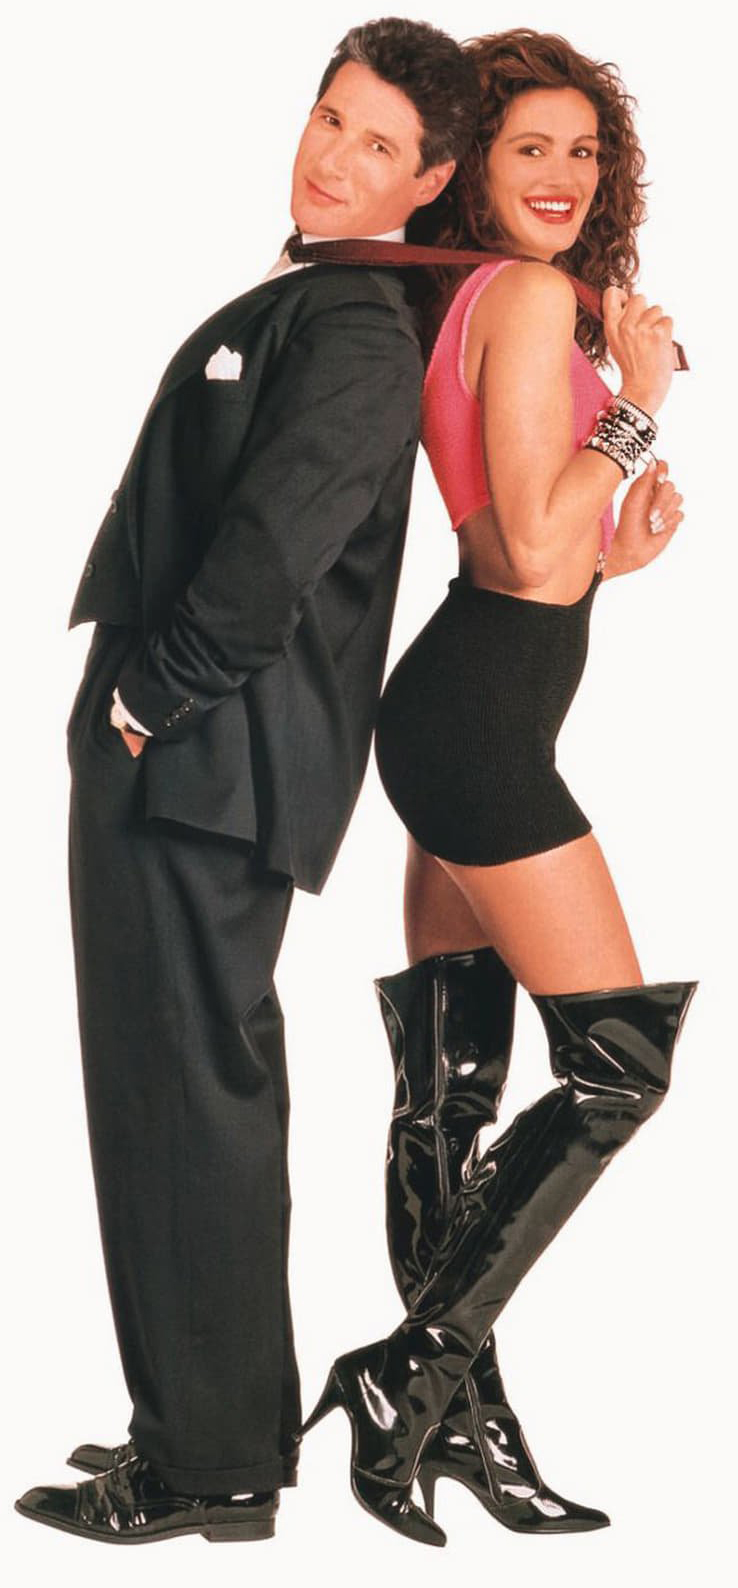 The now famous theatrical poster for Pretty Woman